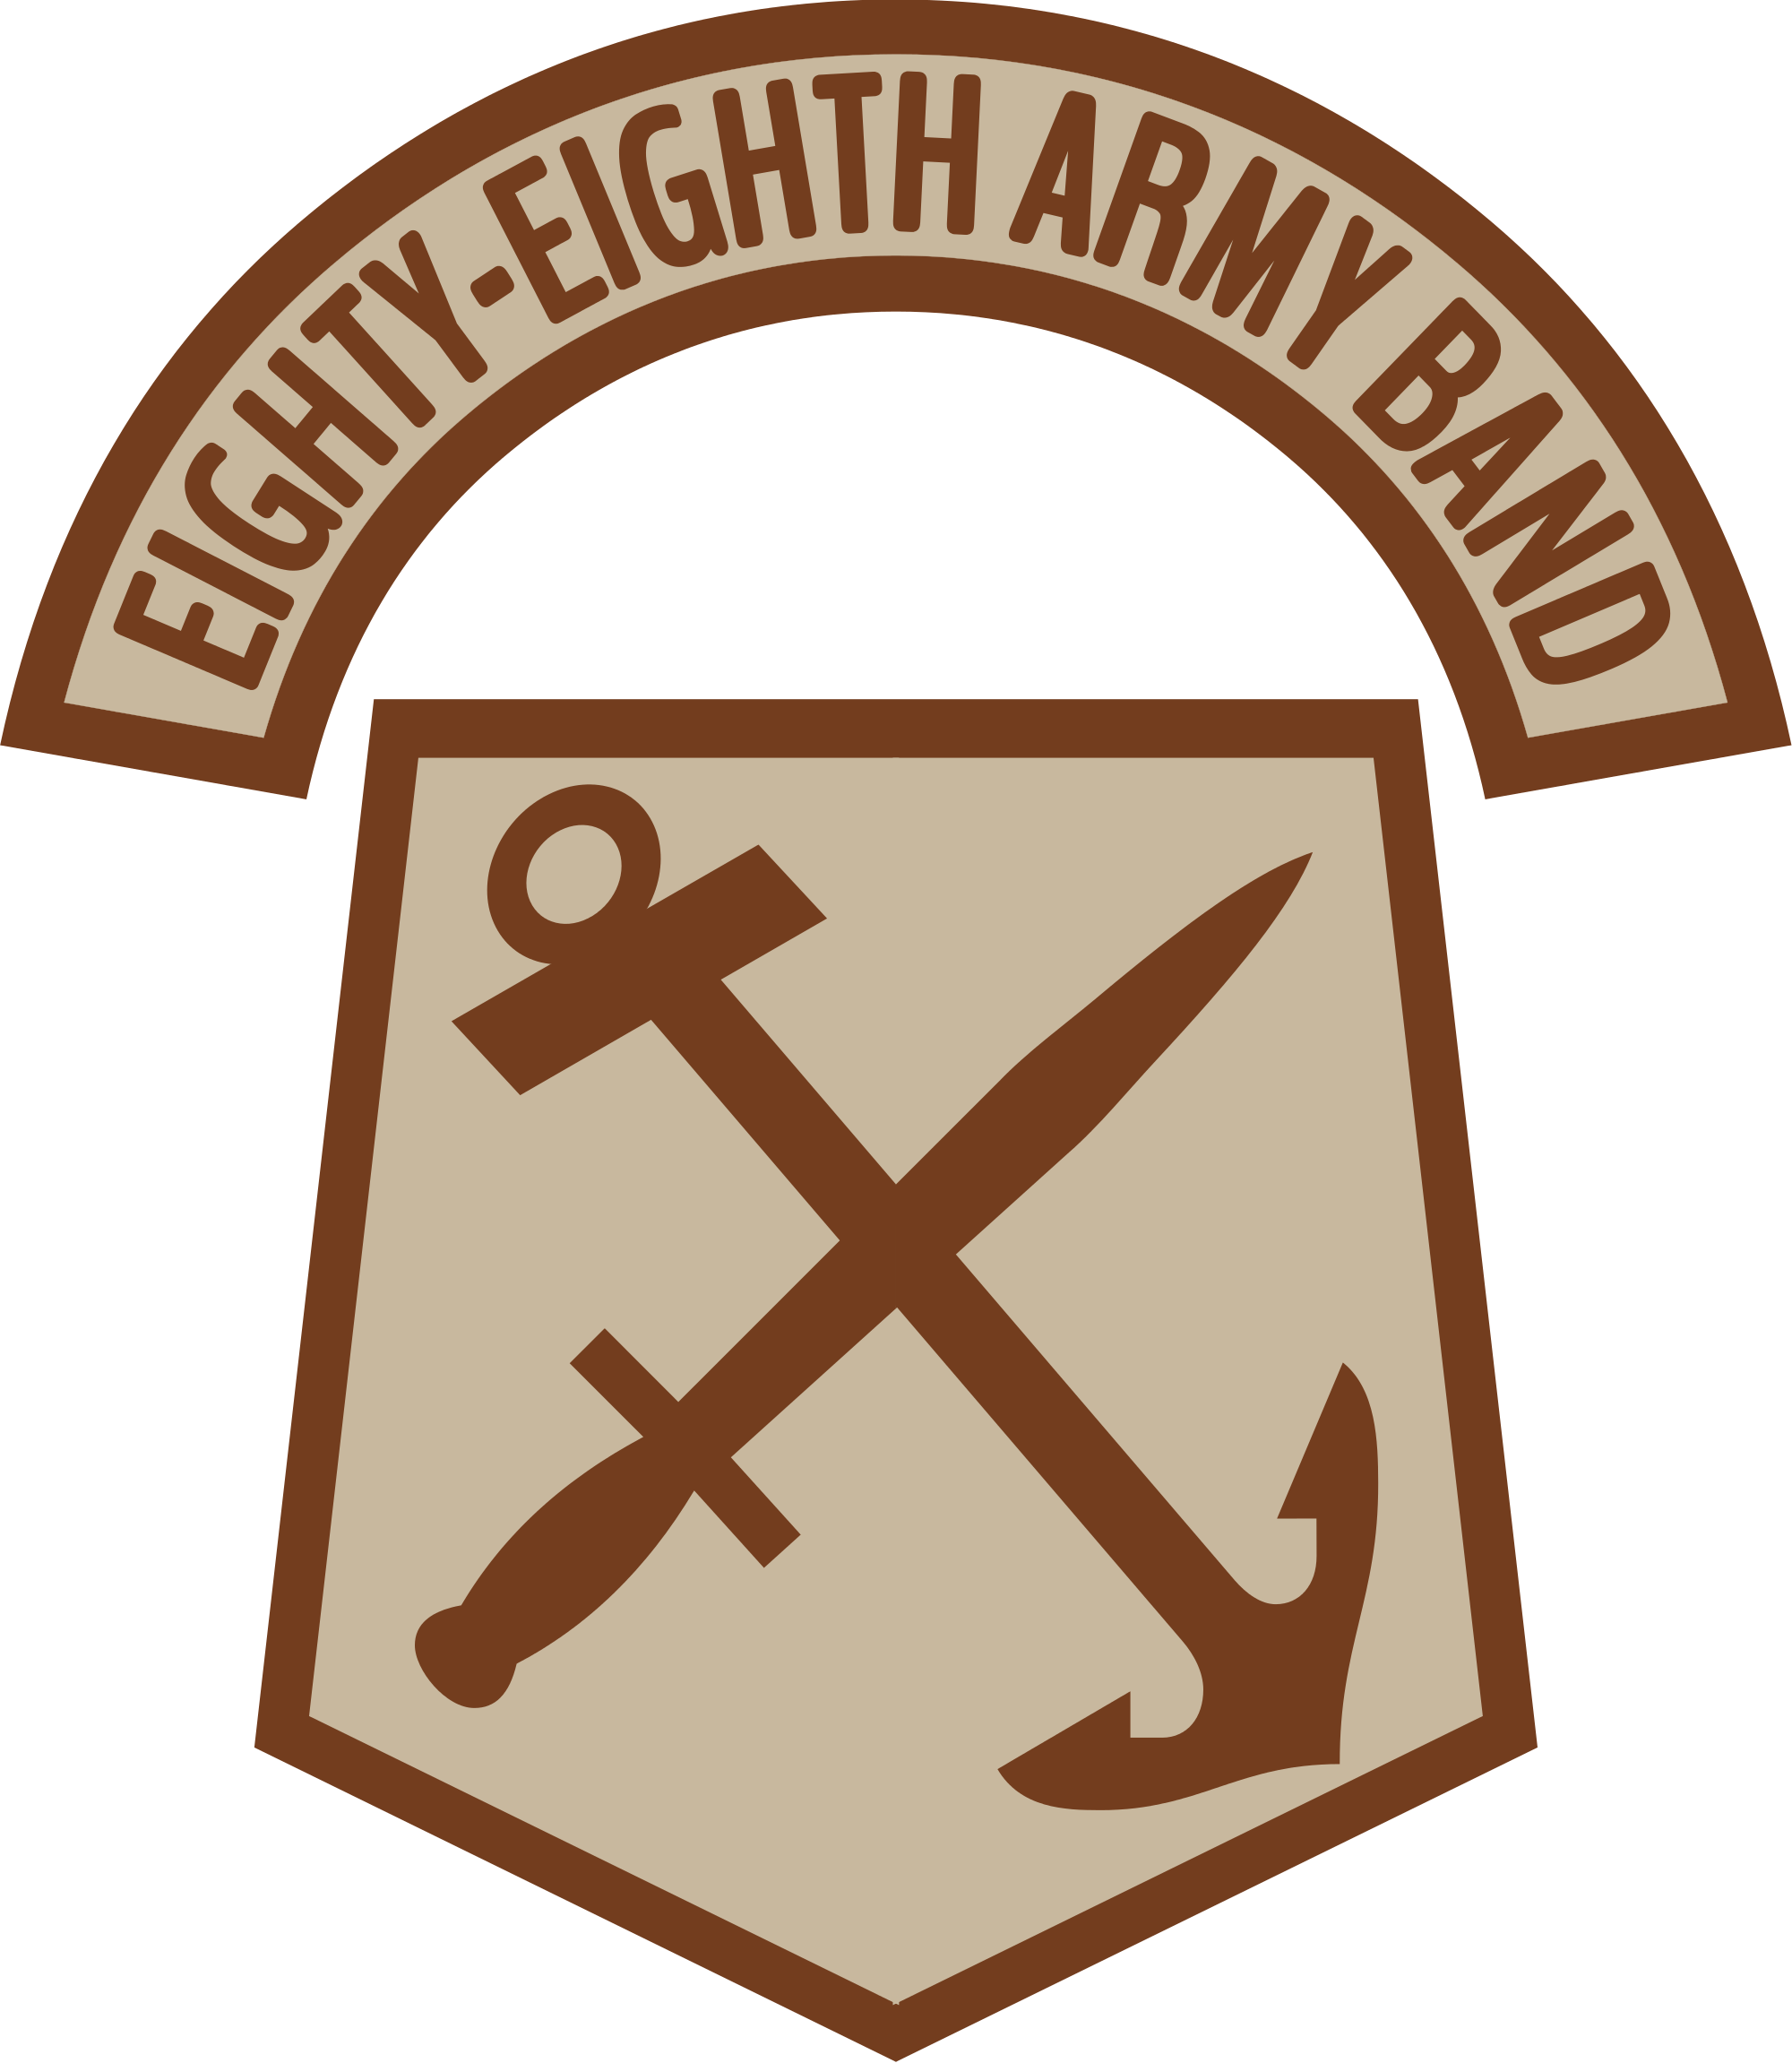 Desert clipart svg. File us army eighty